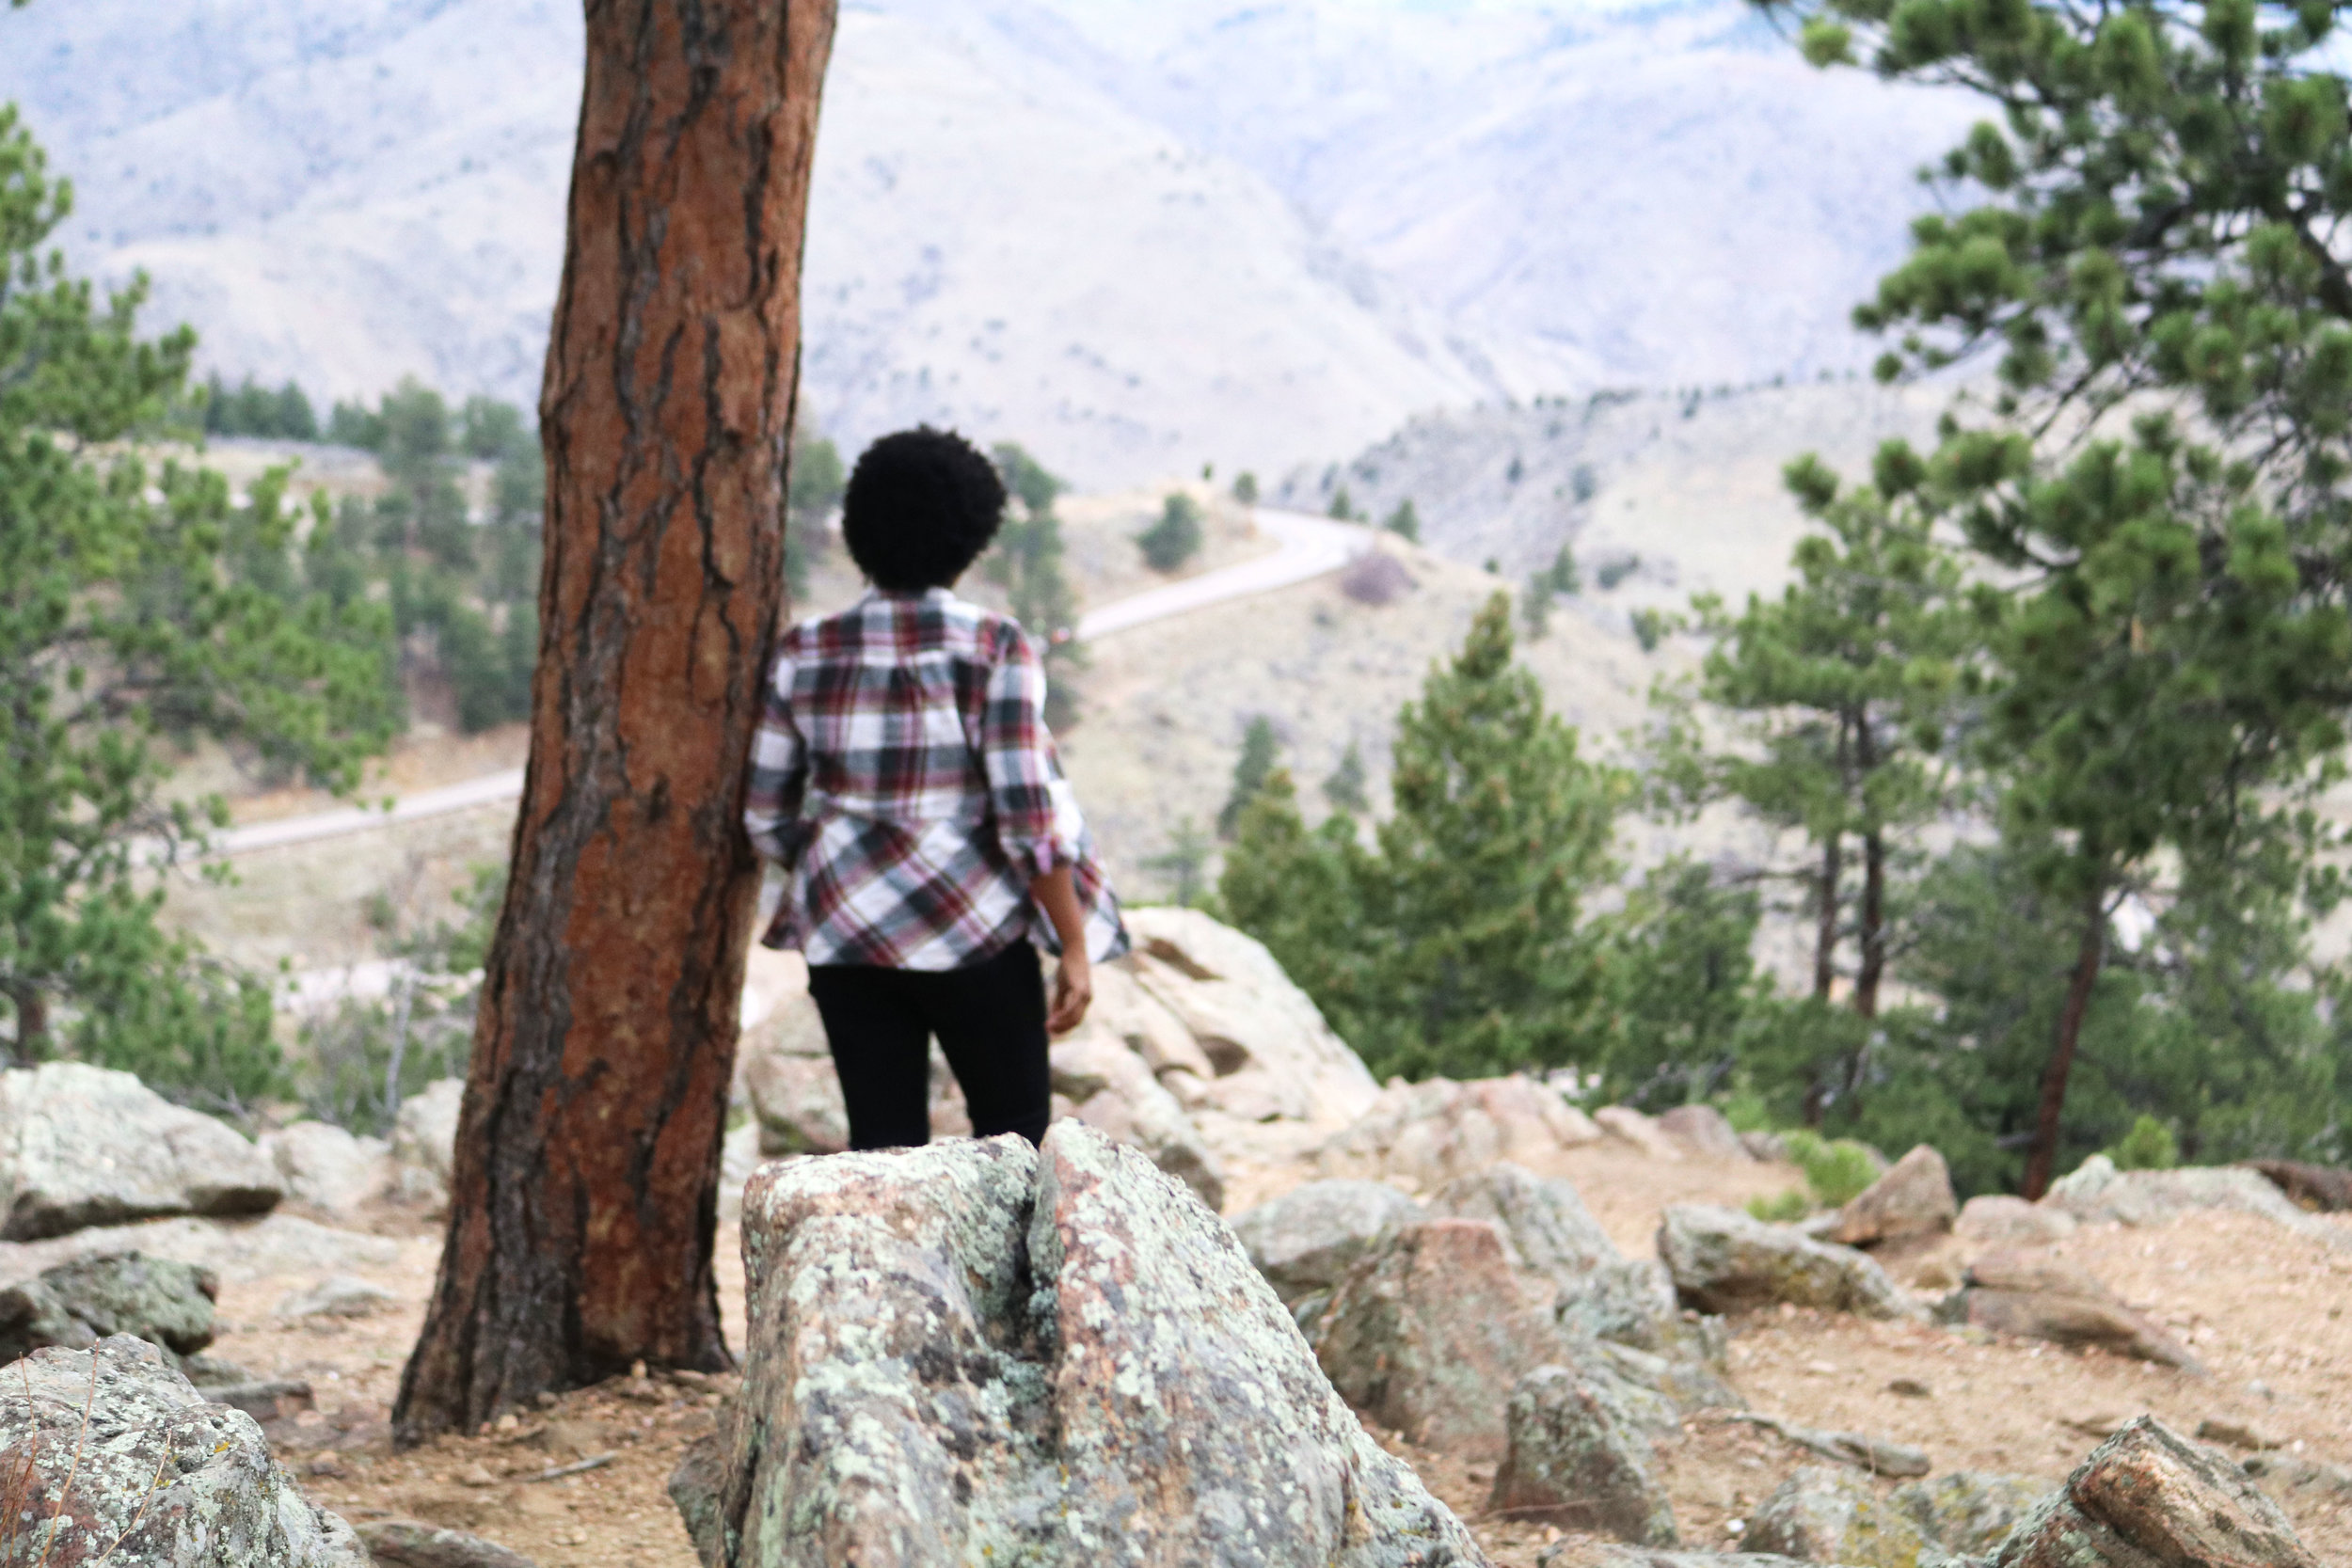 Me gazing into the mountains when we stopped at Lookout Mountain. Great spot for a beautiful view if you don't want to drive too far from Denver.